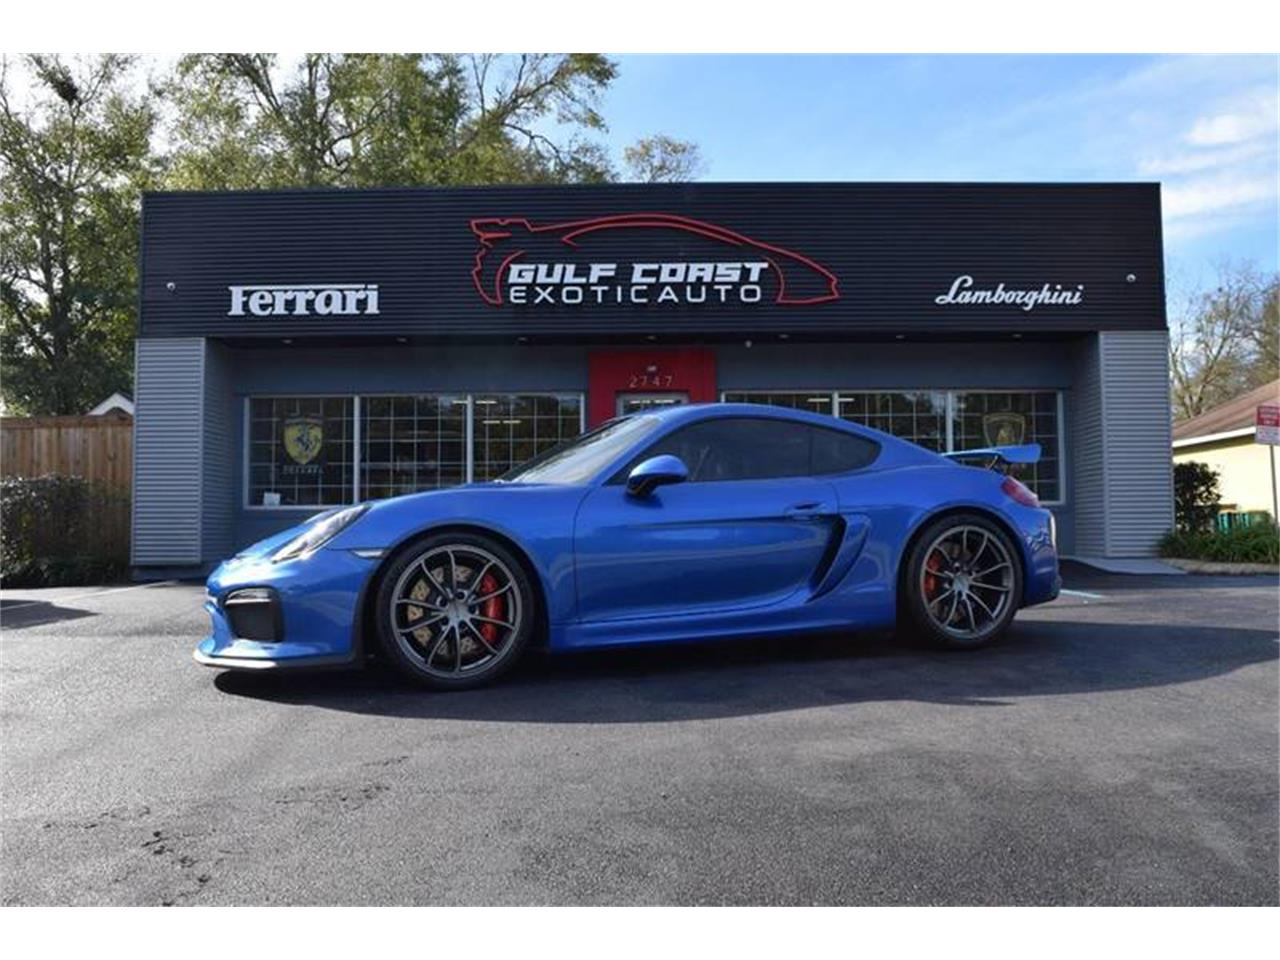 2016 Porsche Cayman (CC-1193160) for sale in Biloxi, Mississippi